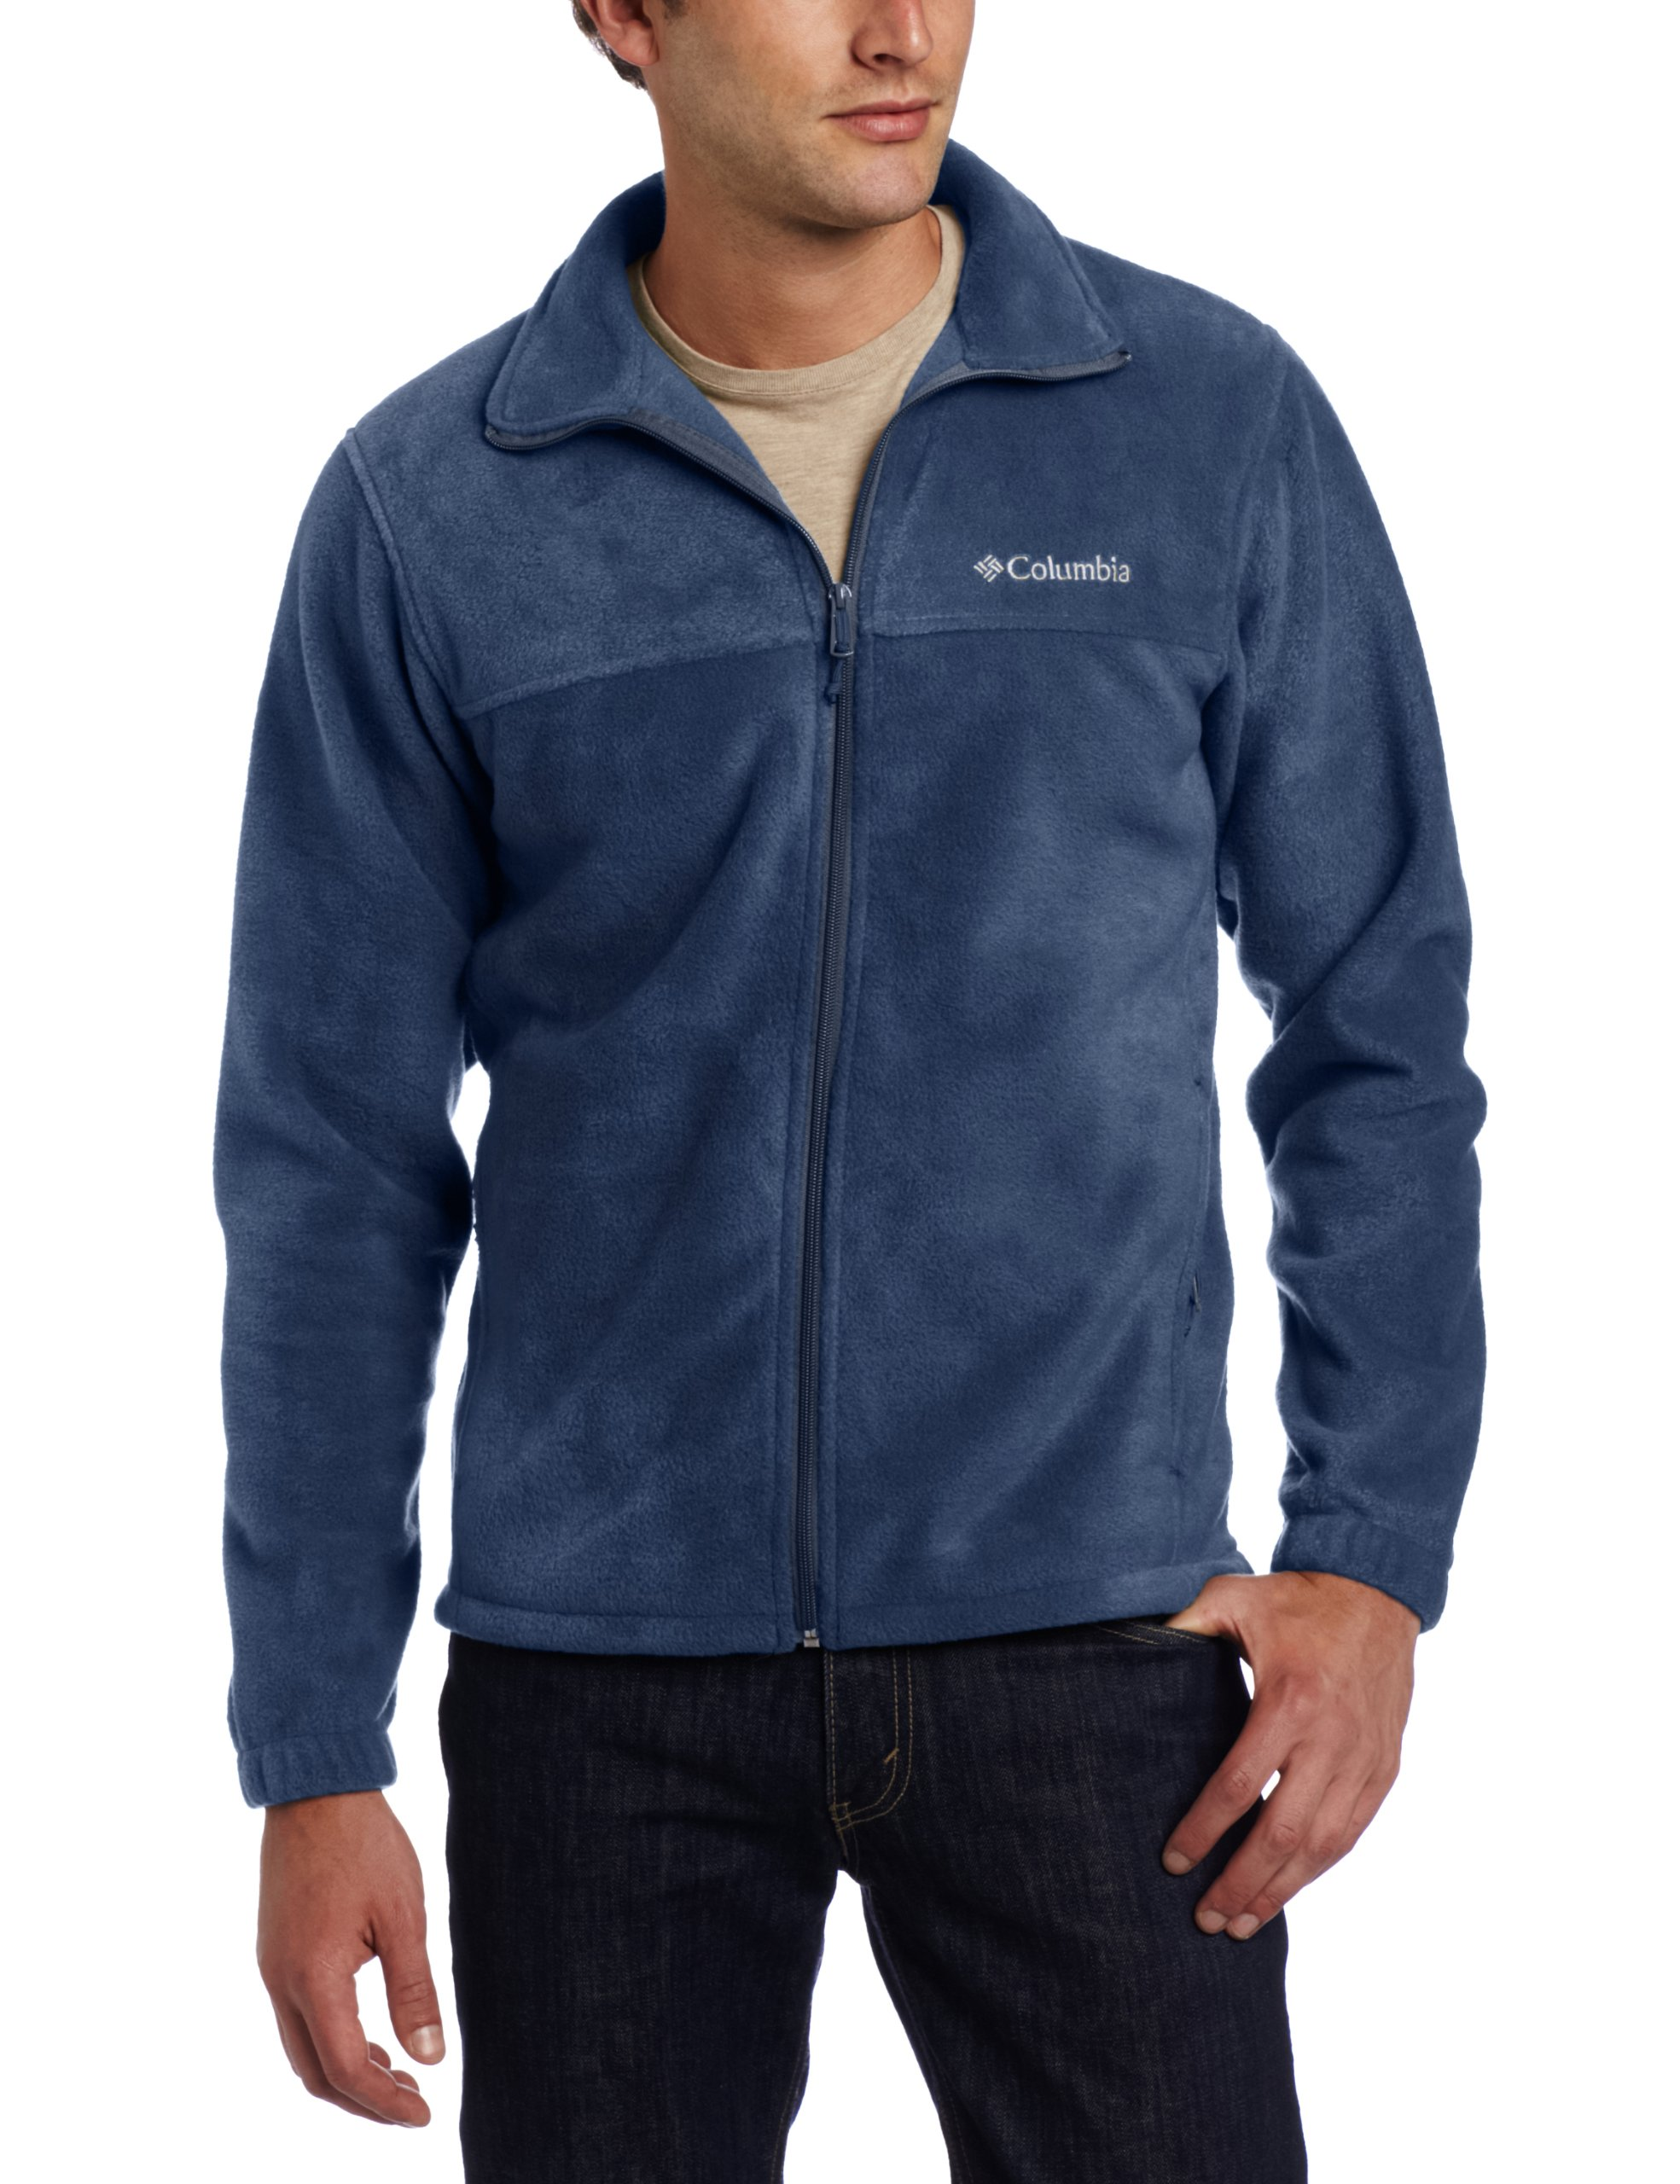 Columbia Men's Tall Steens Mountain Full Zip 2.0 Fleece Jacket, Collegiate Navy, 3X/Tall by Columbia